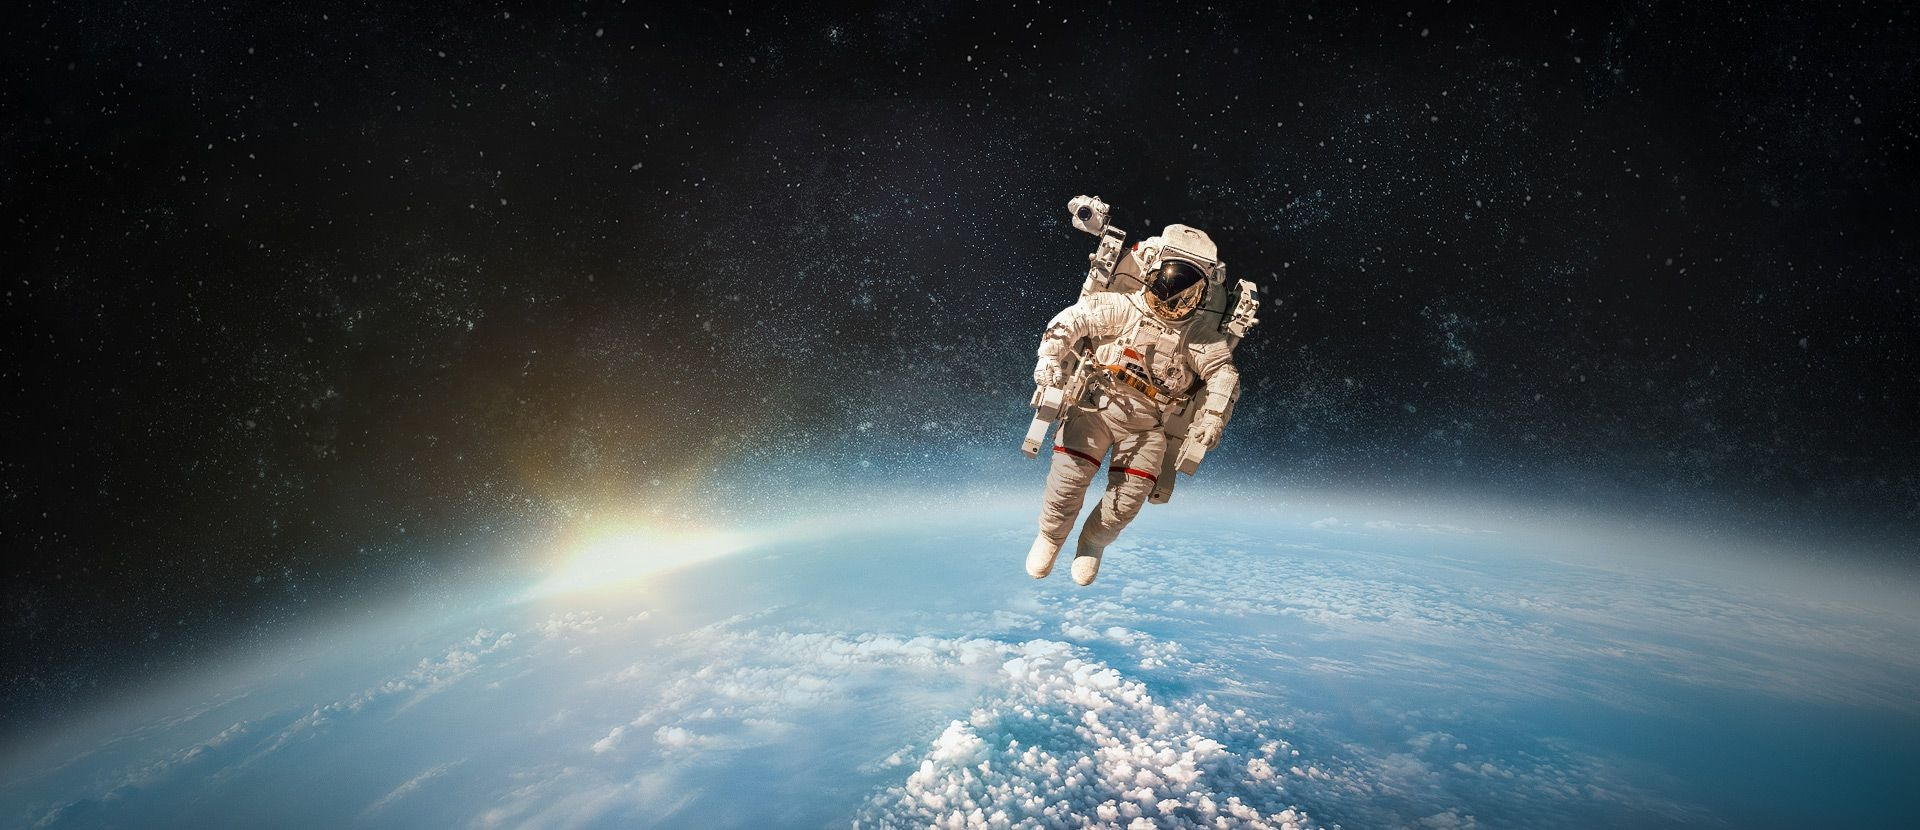 Samsung Galaxy S8 And Saudi Arabia Maple Gold Garansi Resmi Background Image Of An Astronaut Floating Above Earth